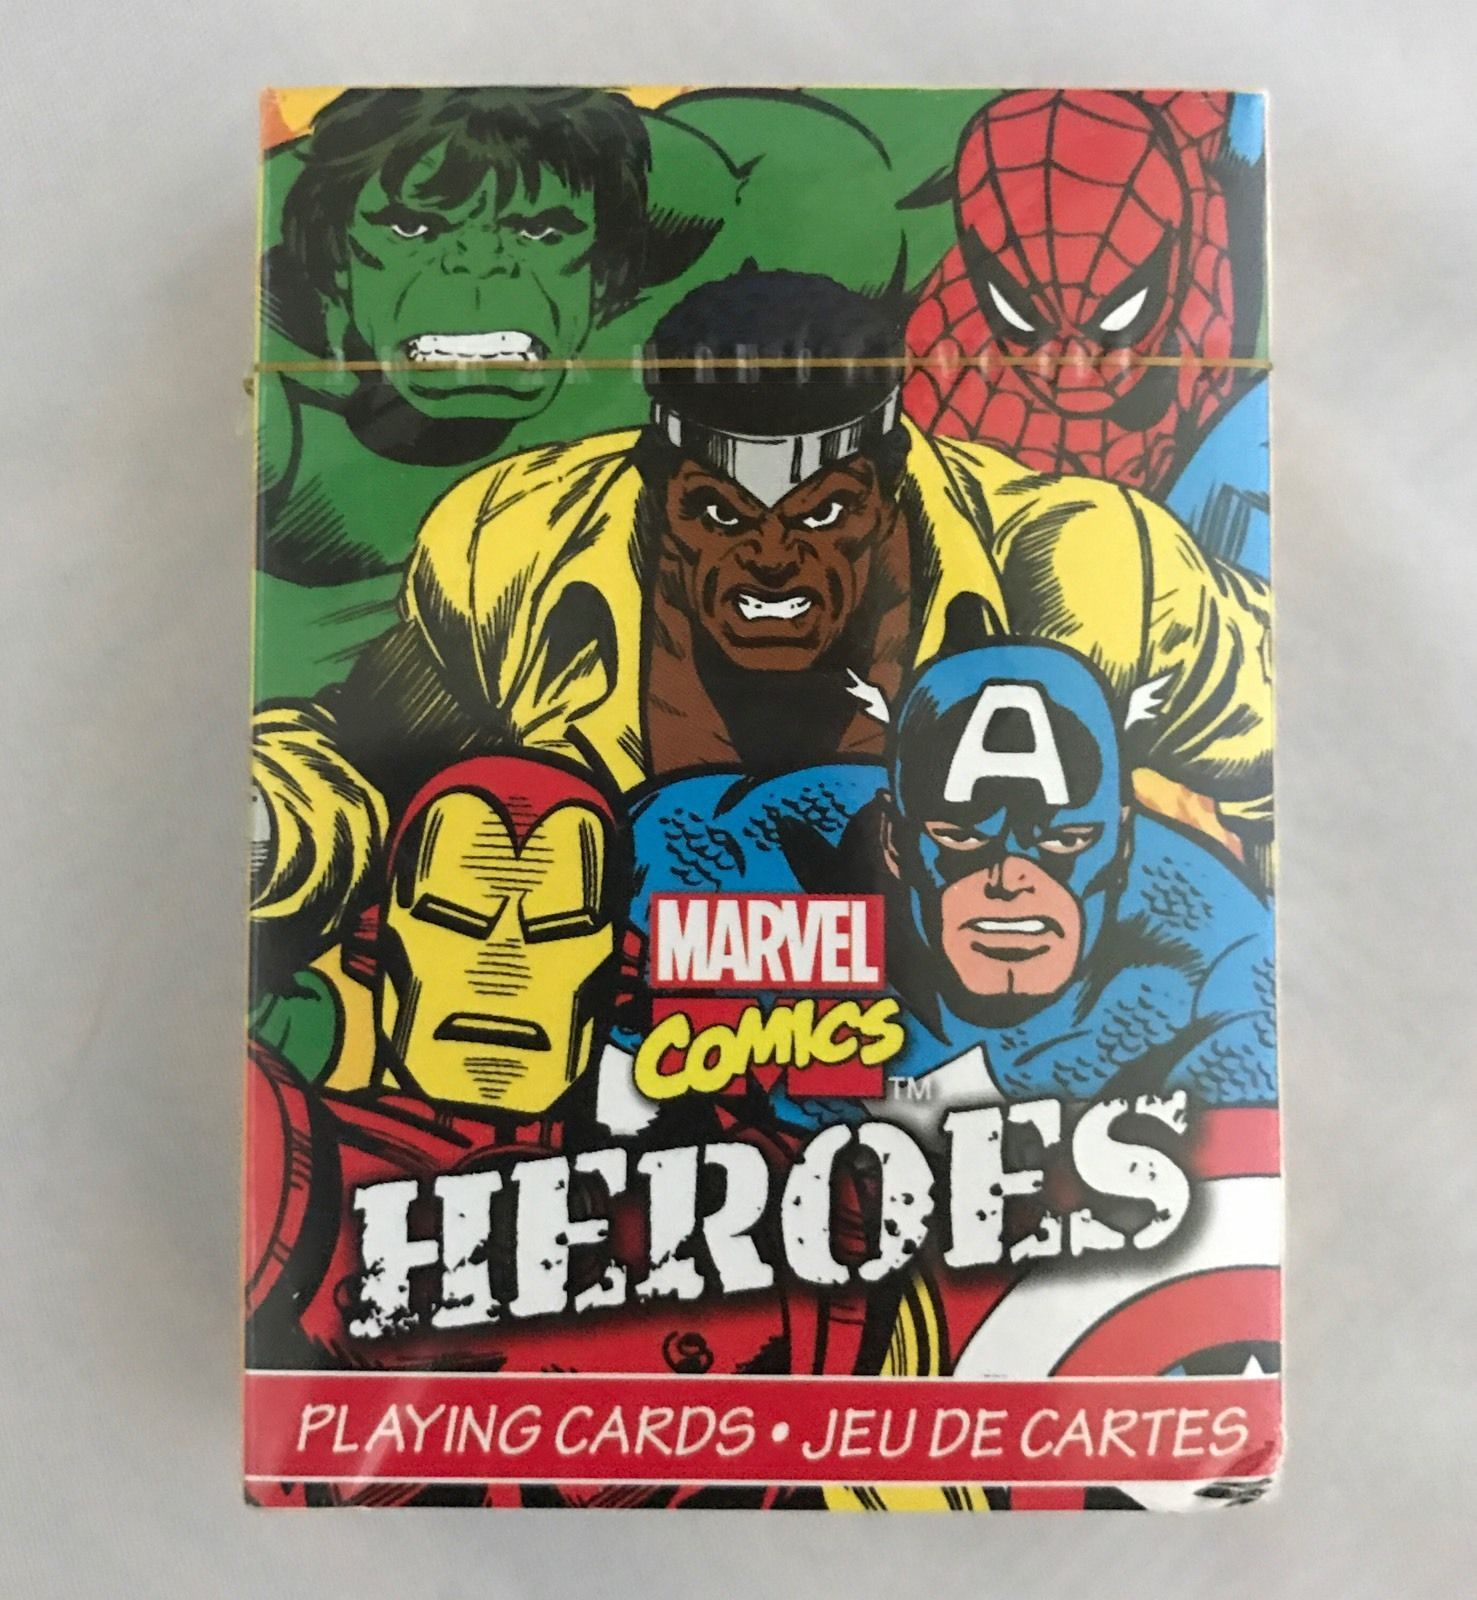 MARVEL HEROES PLAYING CARD DECK 52 CARDS NEW COMICS 52324